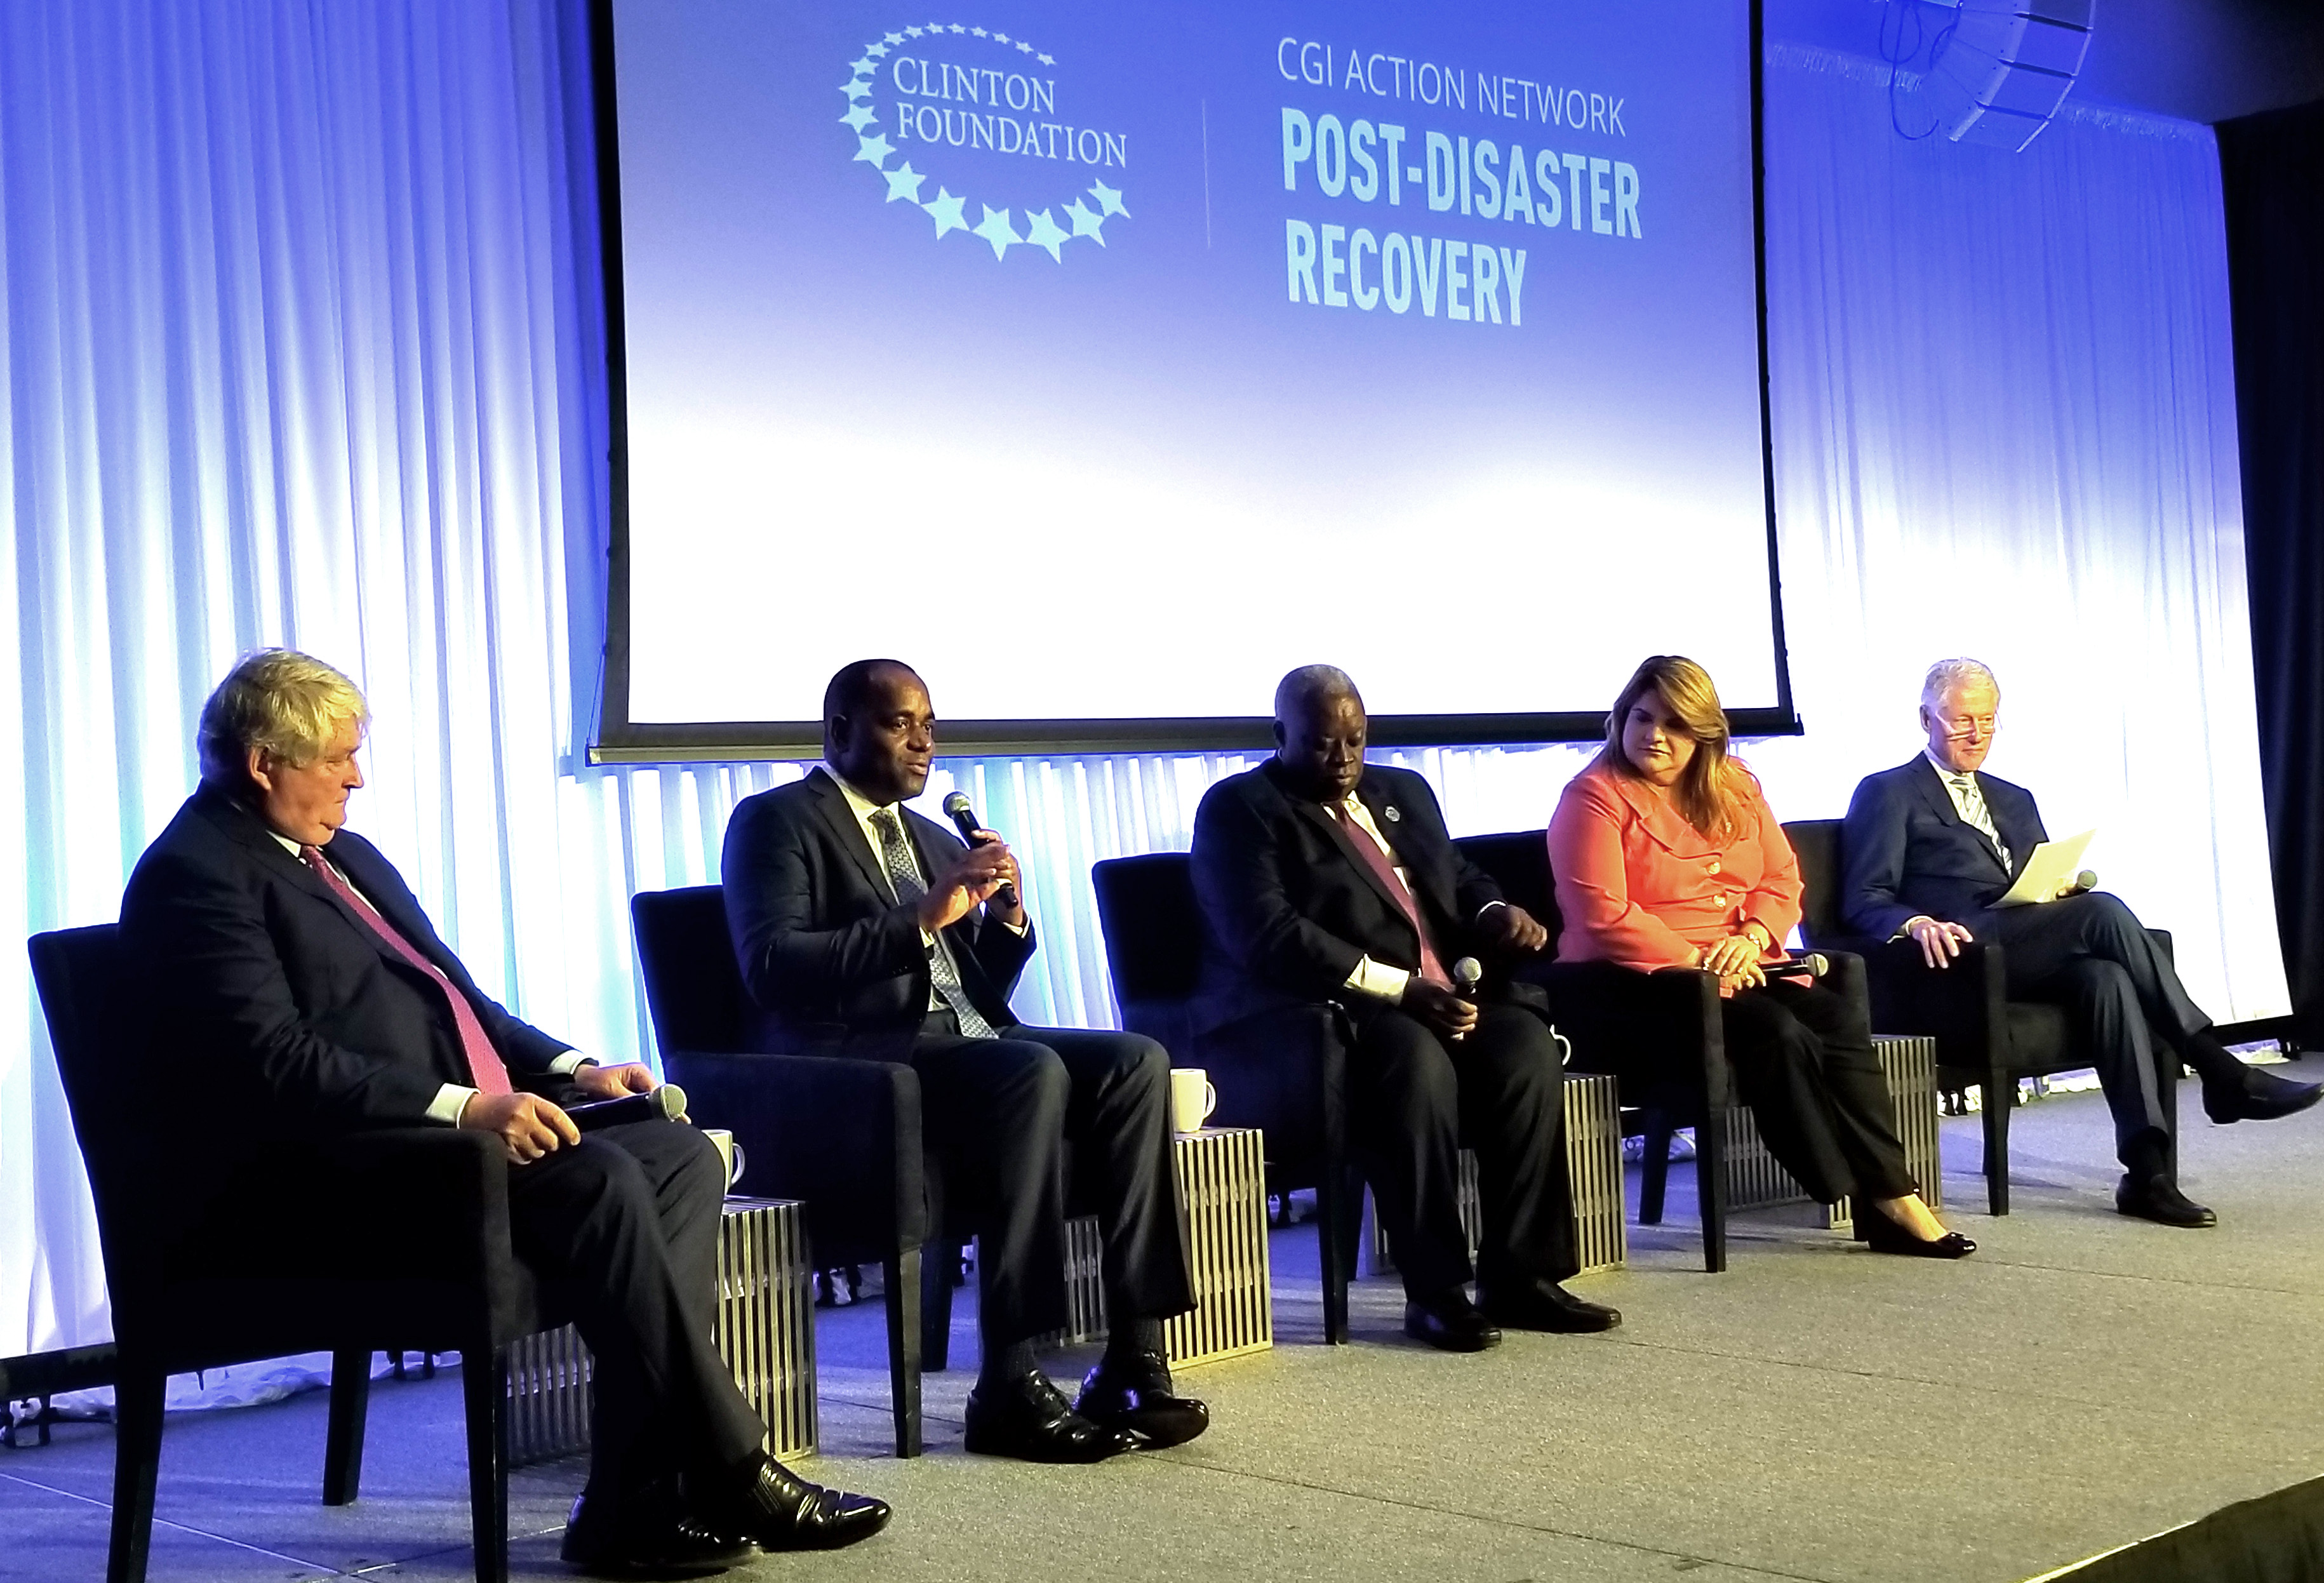 Prime Minister Roosevelt Skerrit of Dominica presents during the Opening Panel Discussion